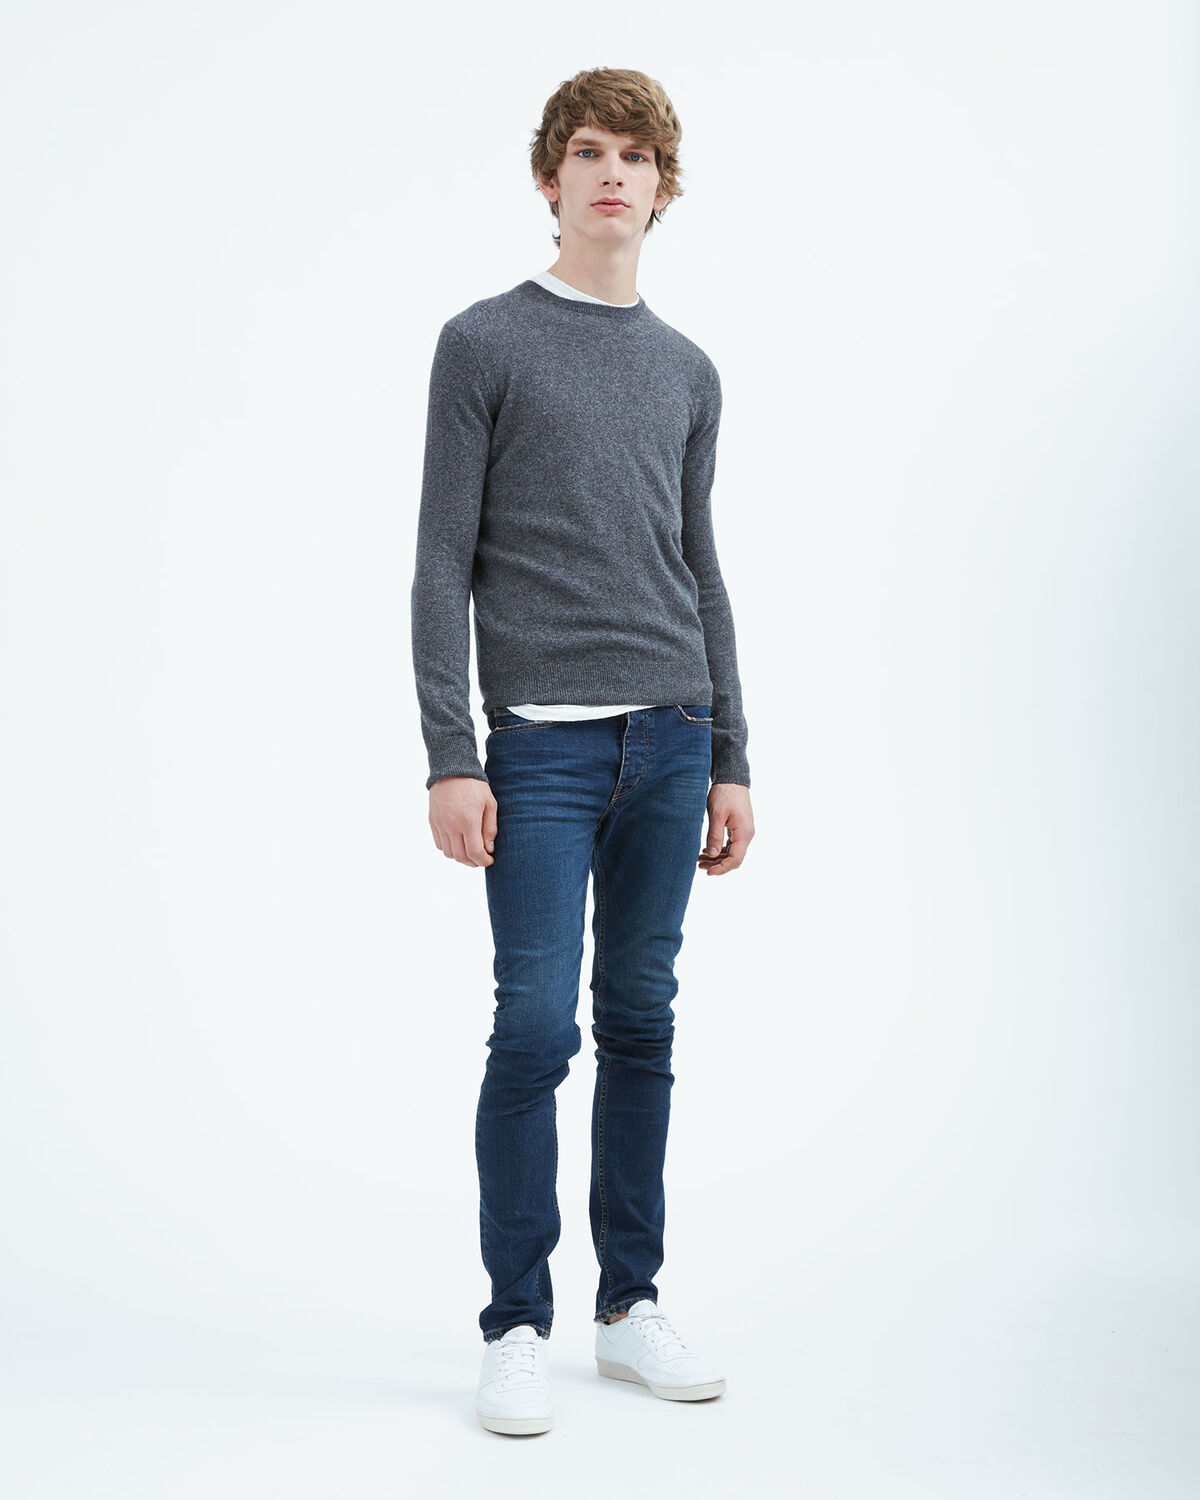 IRO - DANILO SWEATER ANTHRACITE